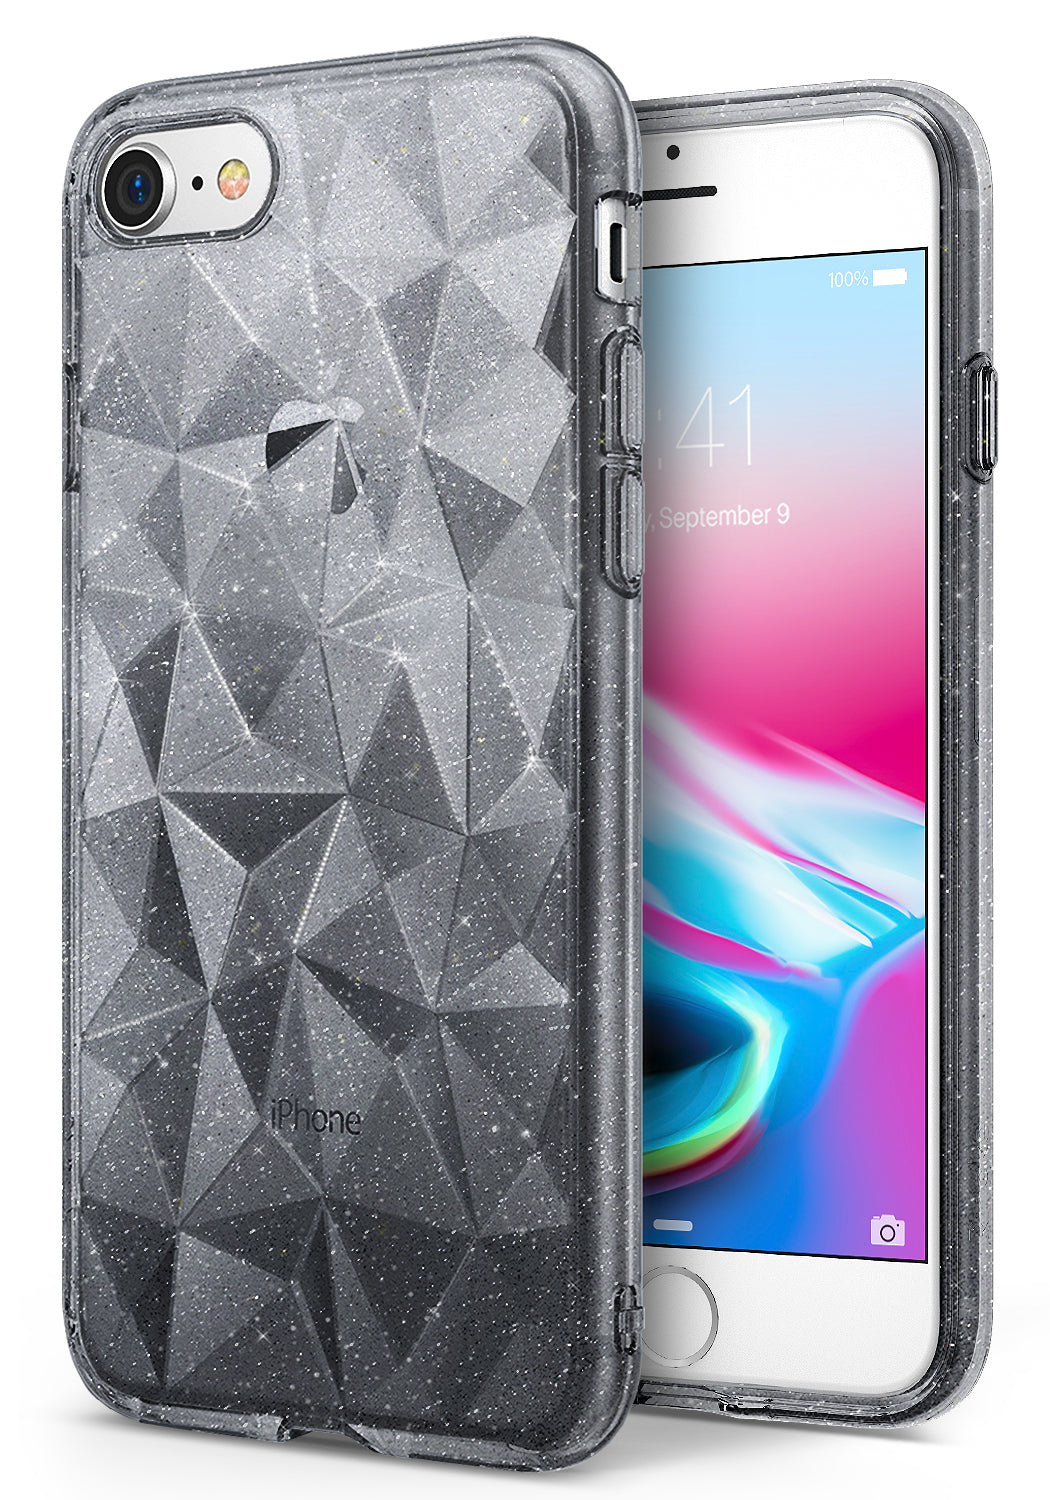 ringke air prism 3d pyramid design back case cover for iphone 7 8 main glitter clear